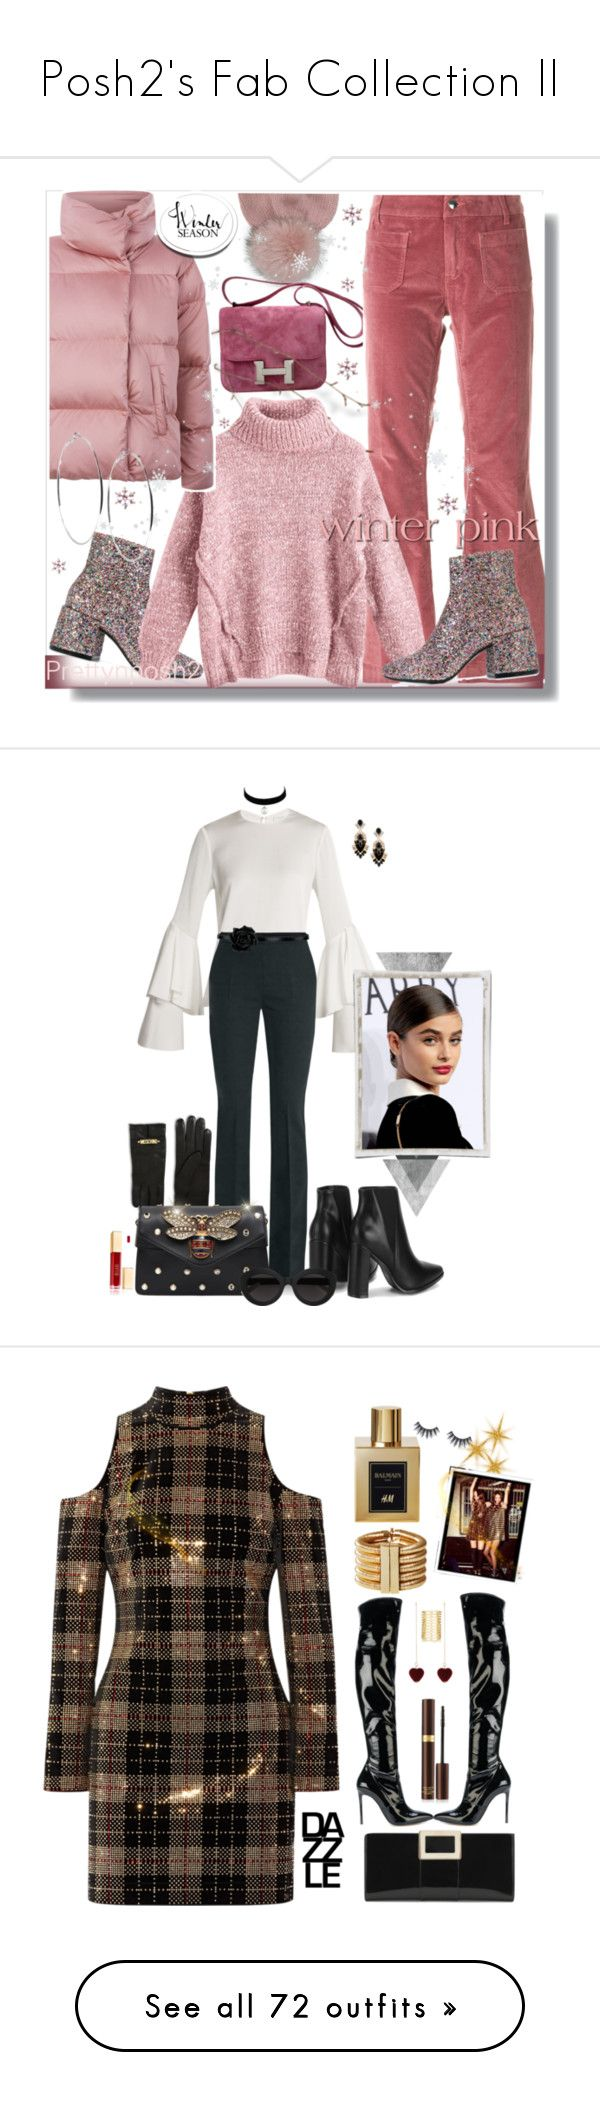 """""""Posh2's Fab Collection ll"""" by prettynposh2 ❤ liked on Polyvore featuring Inverni, MM6 Maison Margiela, Hermès, The Seafarer, Weekend Max Mara, GUESS, Winter, Galvan, MaxMara and Moschino"""